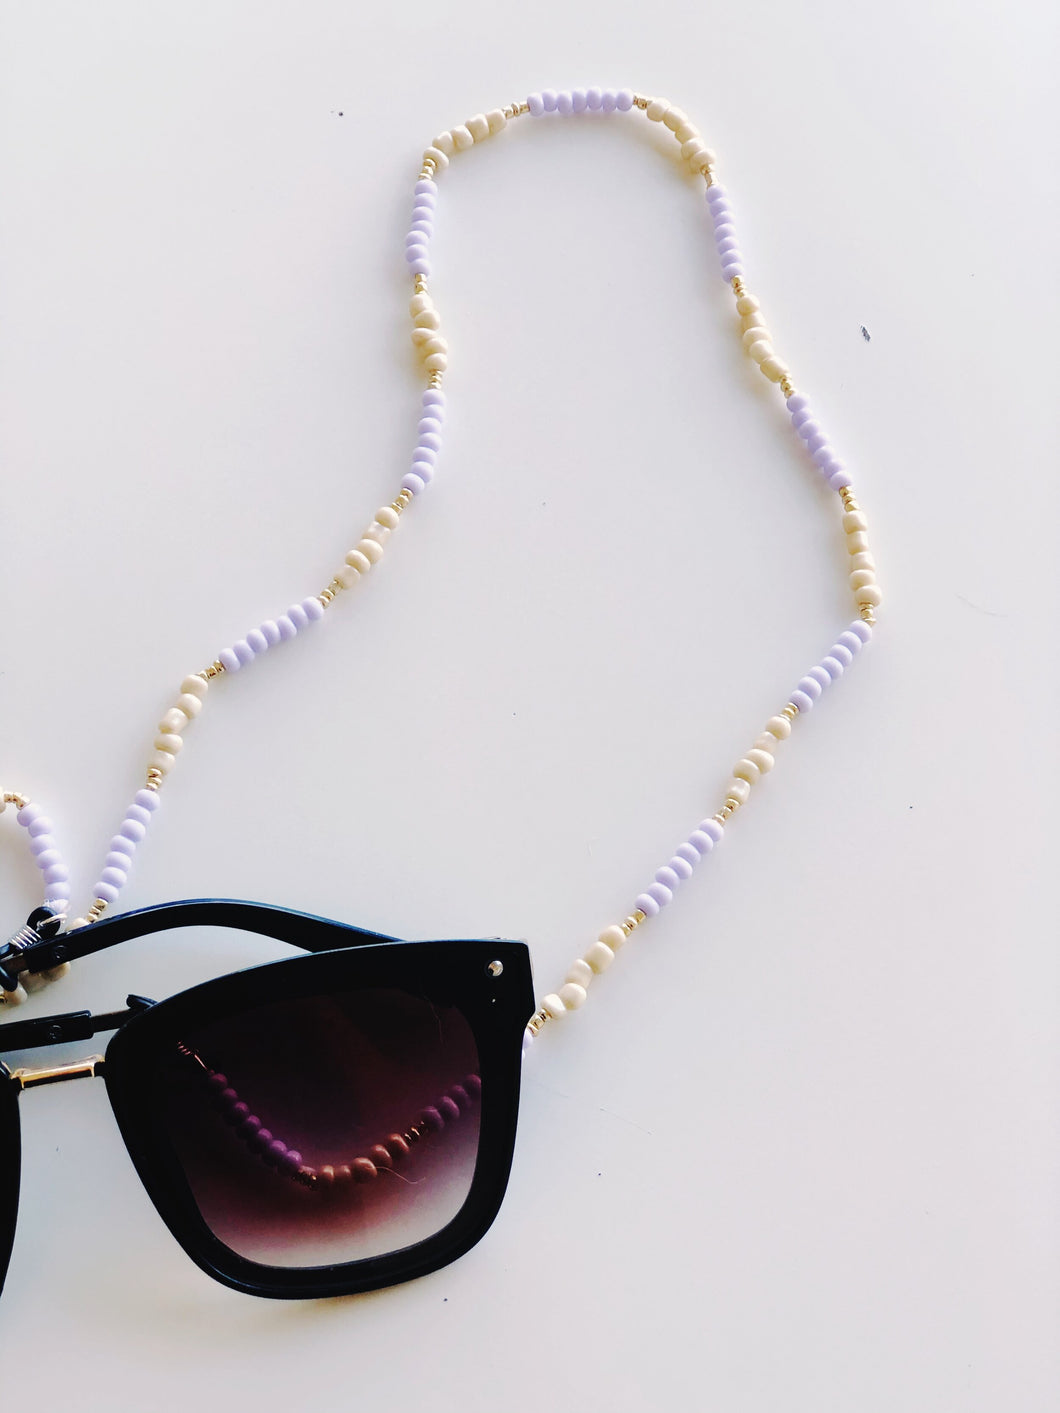 Bisous de Mamie Sunglasses Chain from Mamie